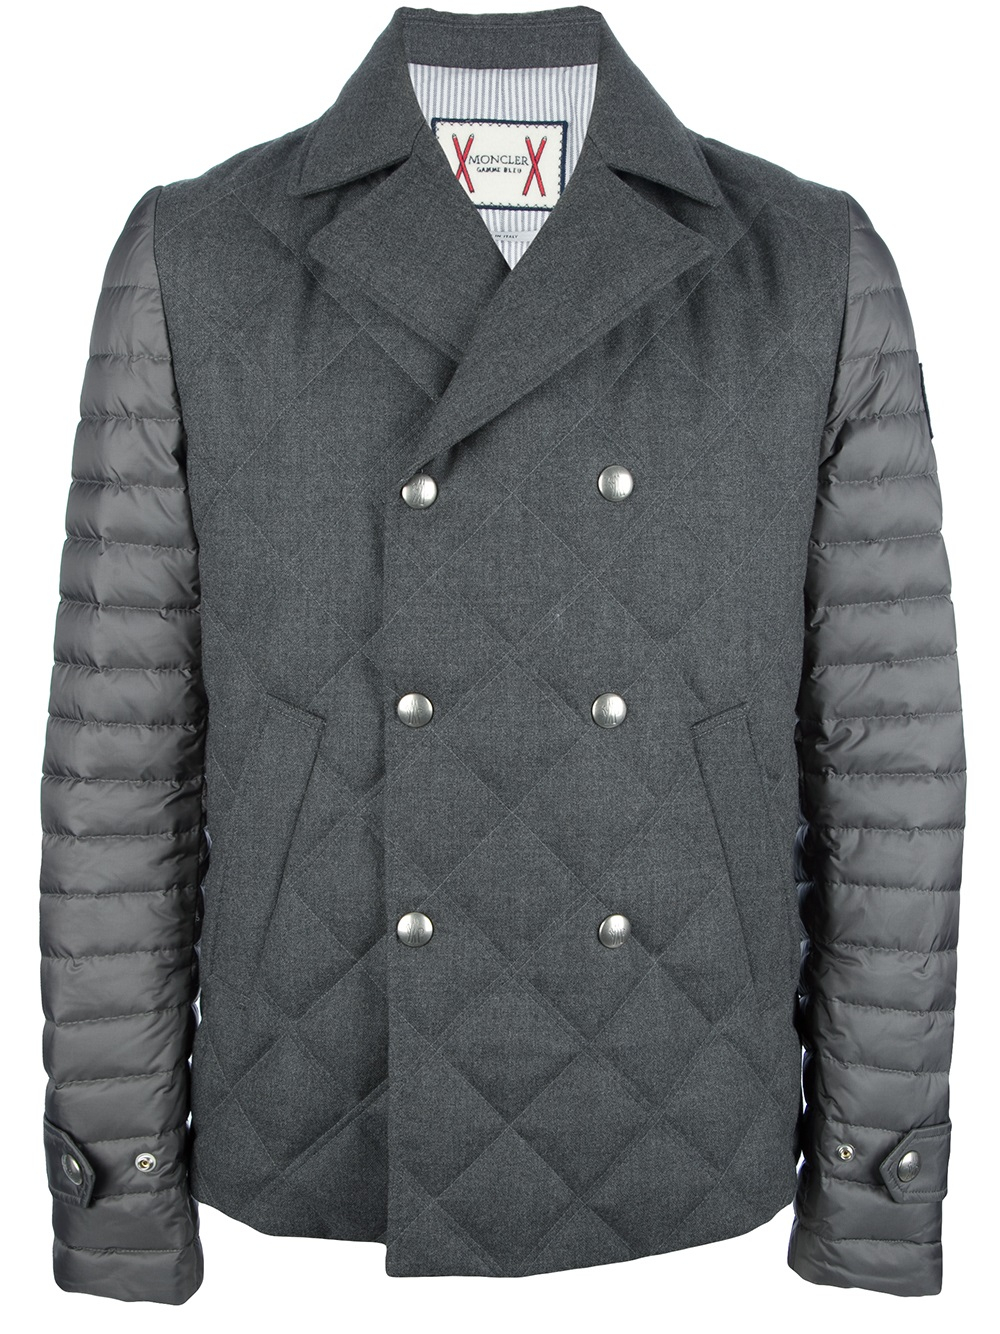 Moncler gamme bleu Quilted Pea Coat in Gray for Men | Lyst : quilted pea coat - Adamdwight.com